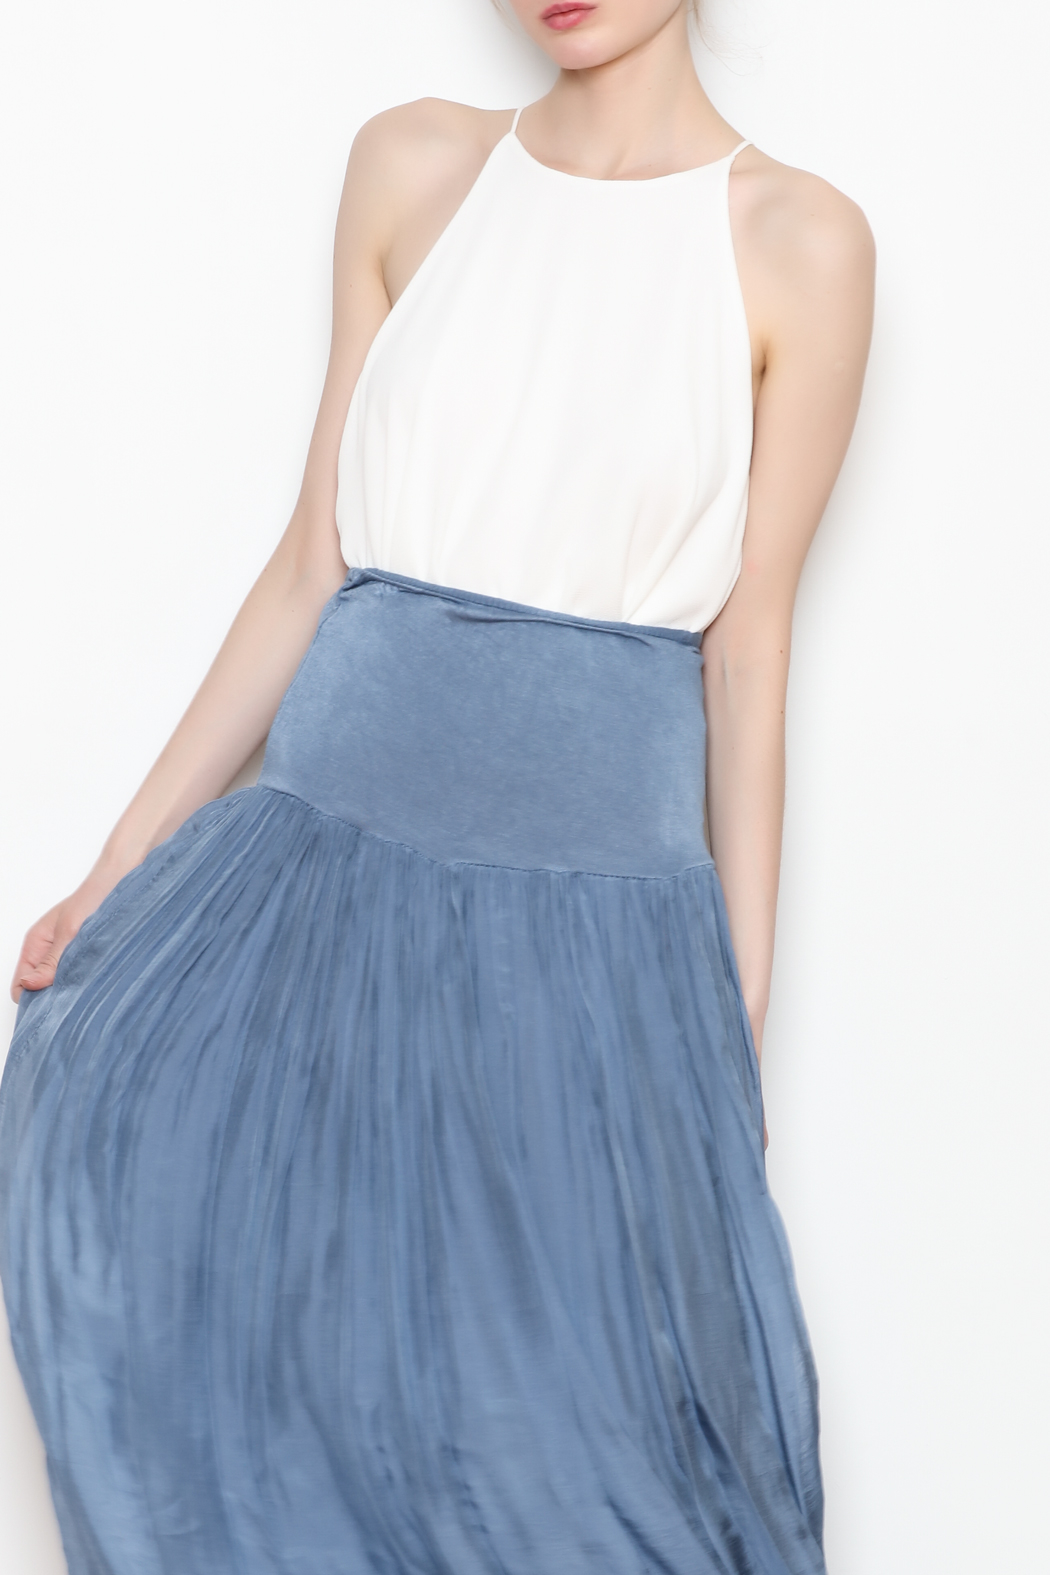 Lola Convertible Dress/Skirt - Front Full Image